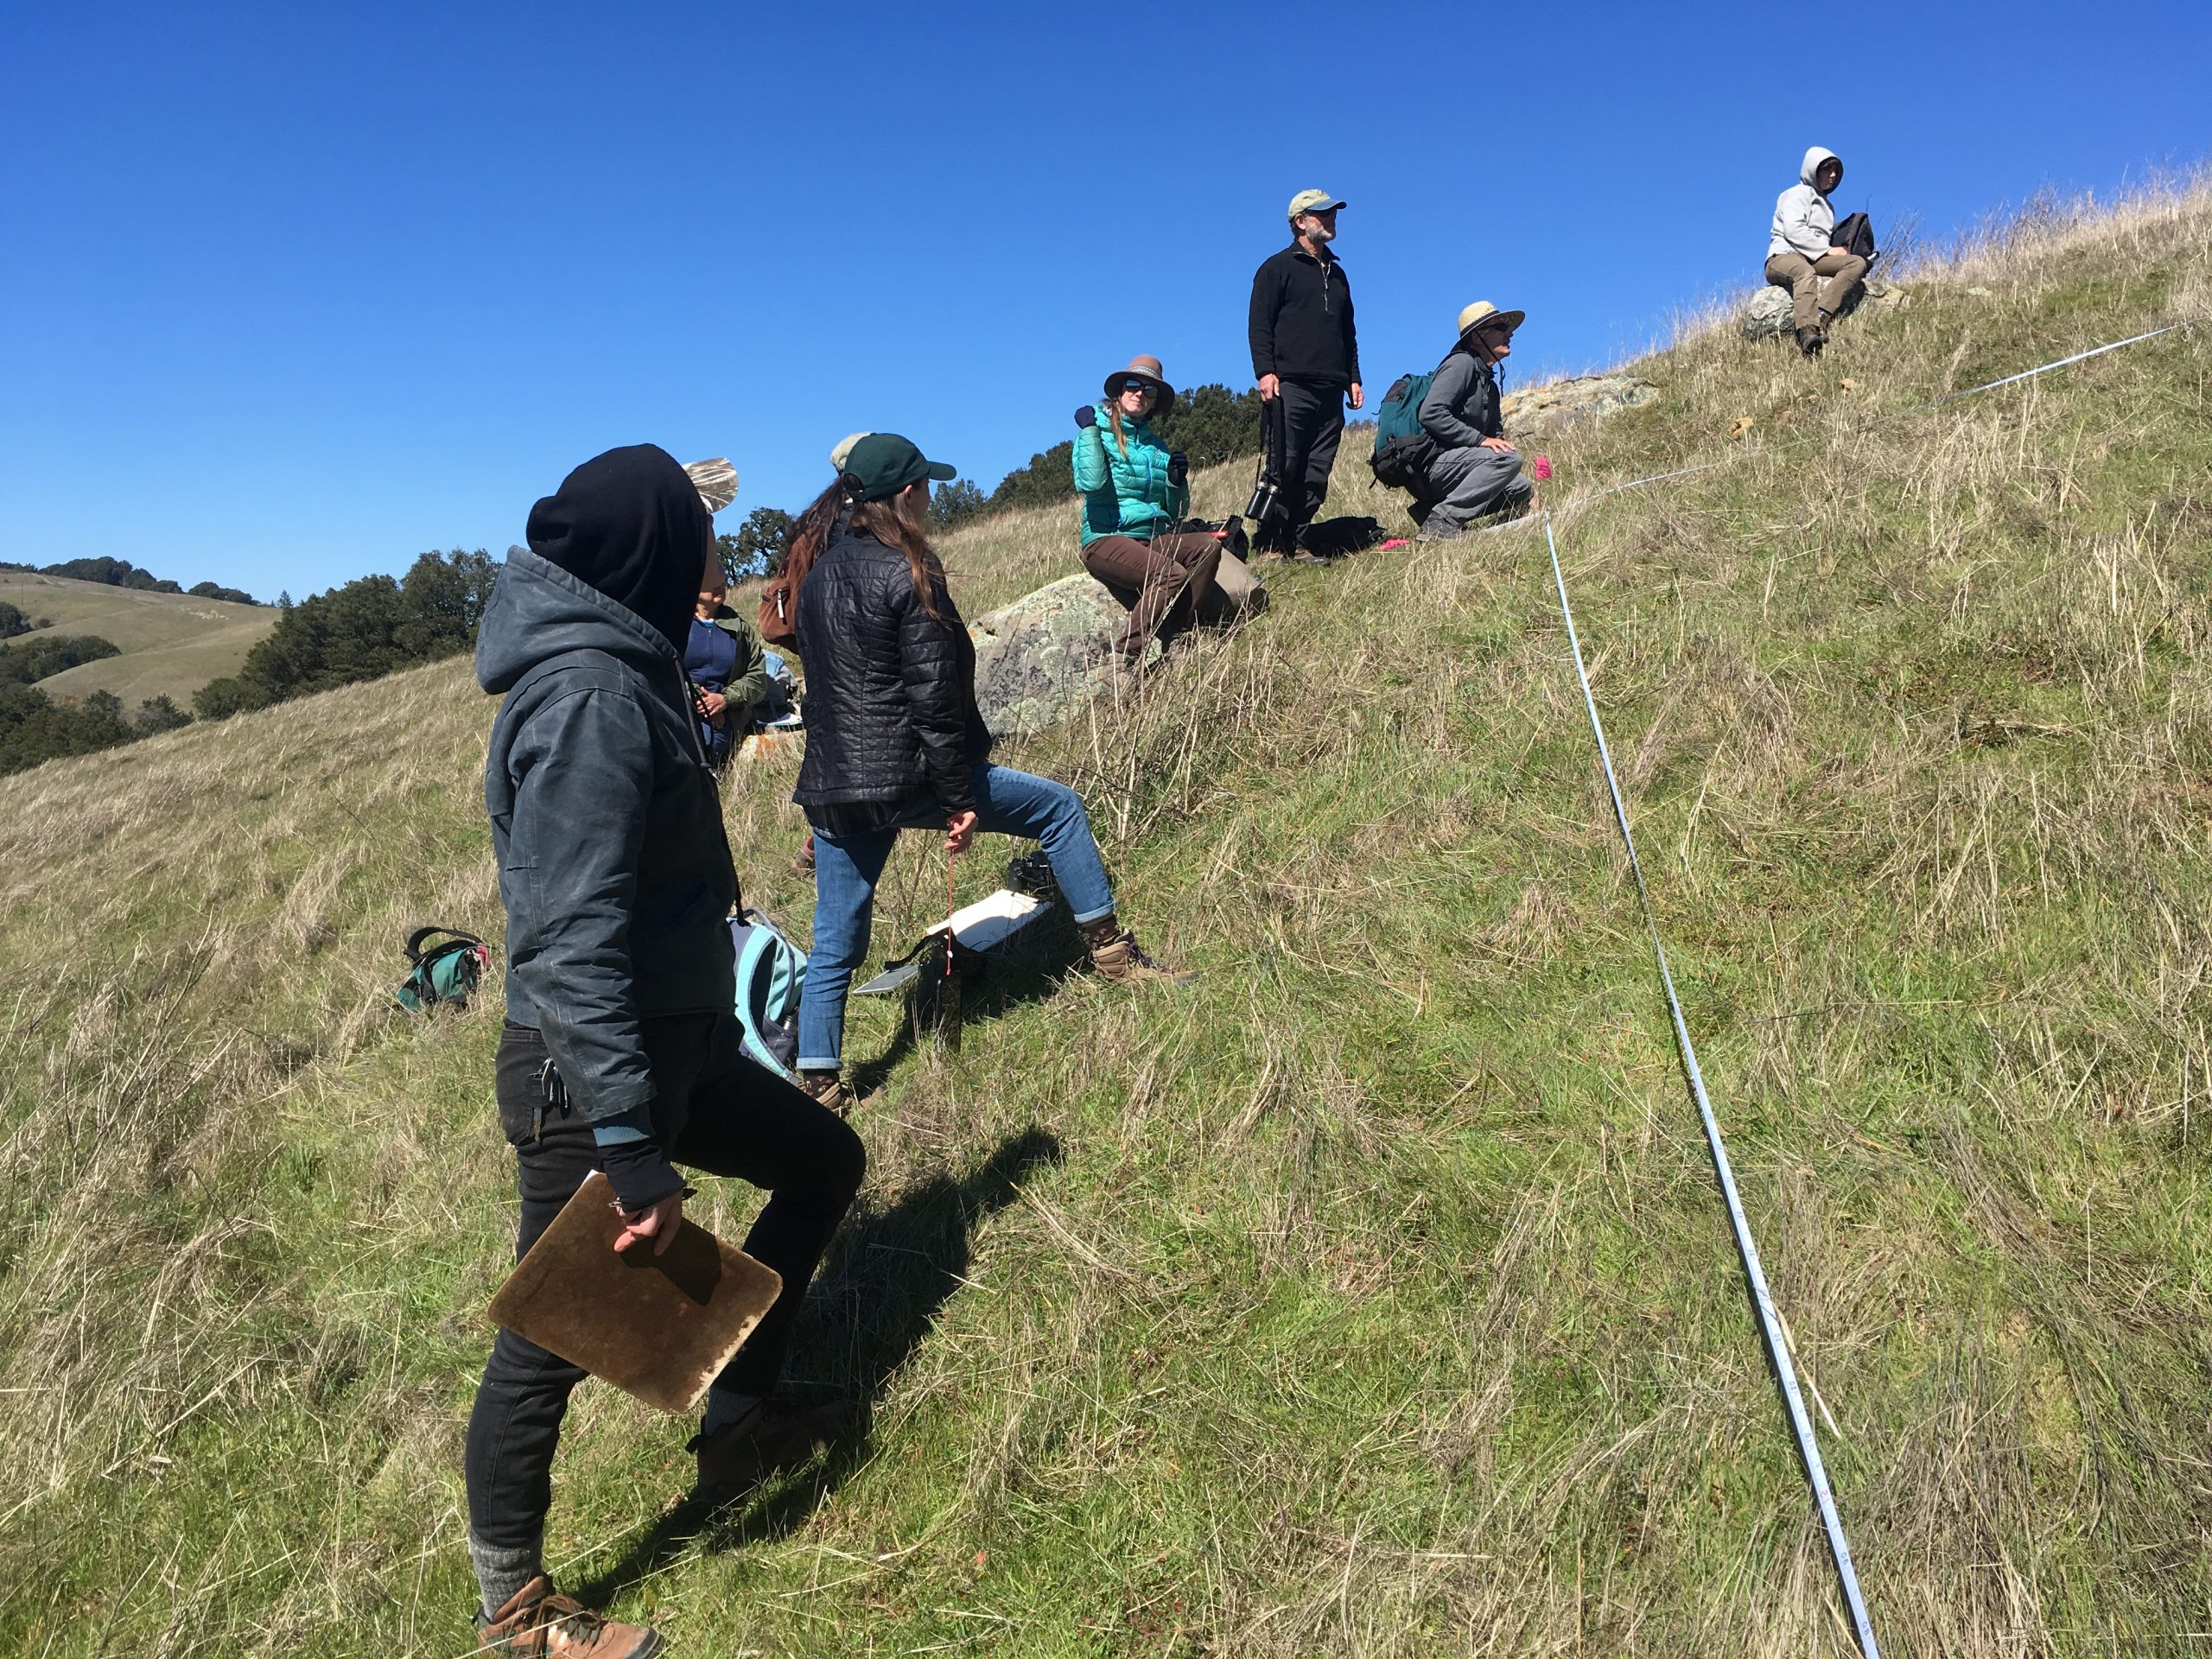 UCSC Arboretum students were trained in making releve surveys by Julie Evans from the California Native Plant Society. The training took place at one of the Midpeninsula Regional Open Space District properties, where UCSC students were used extensively in conducting surveys. Photo credit: Lucy Ferneyhough, courtesy of University of California Santa Cruz Arboretum.